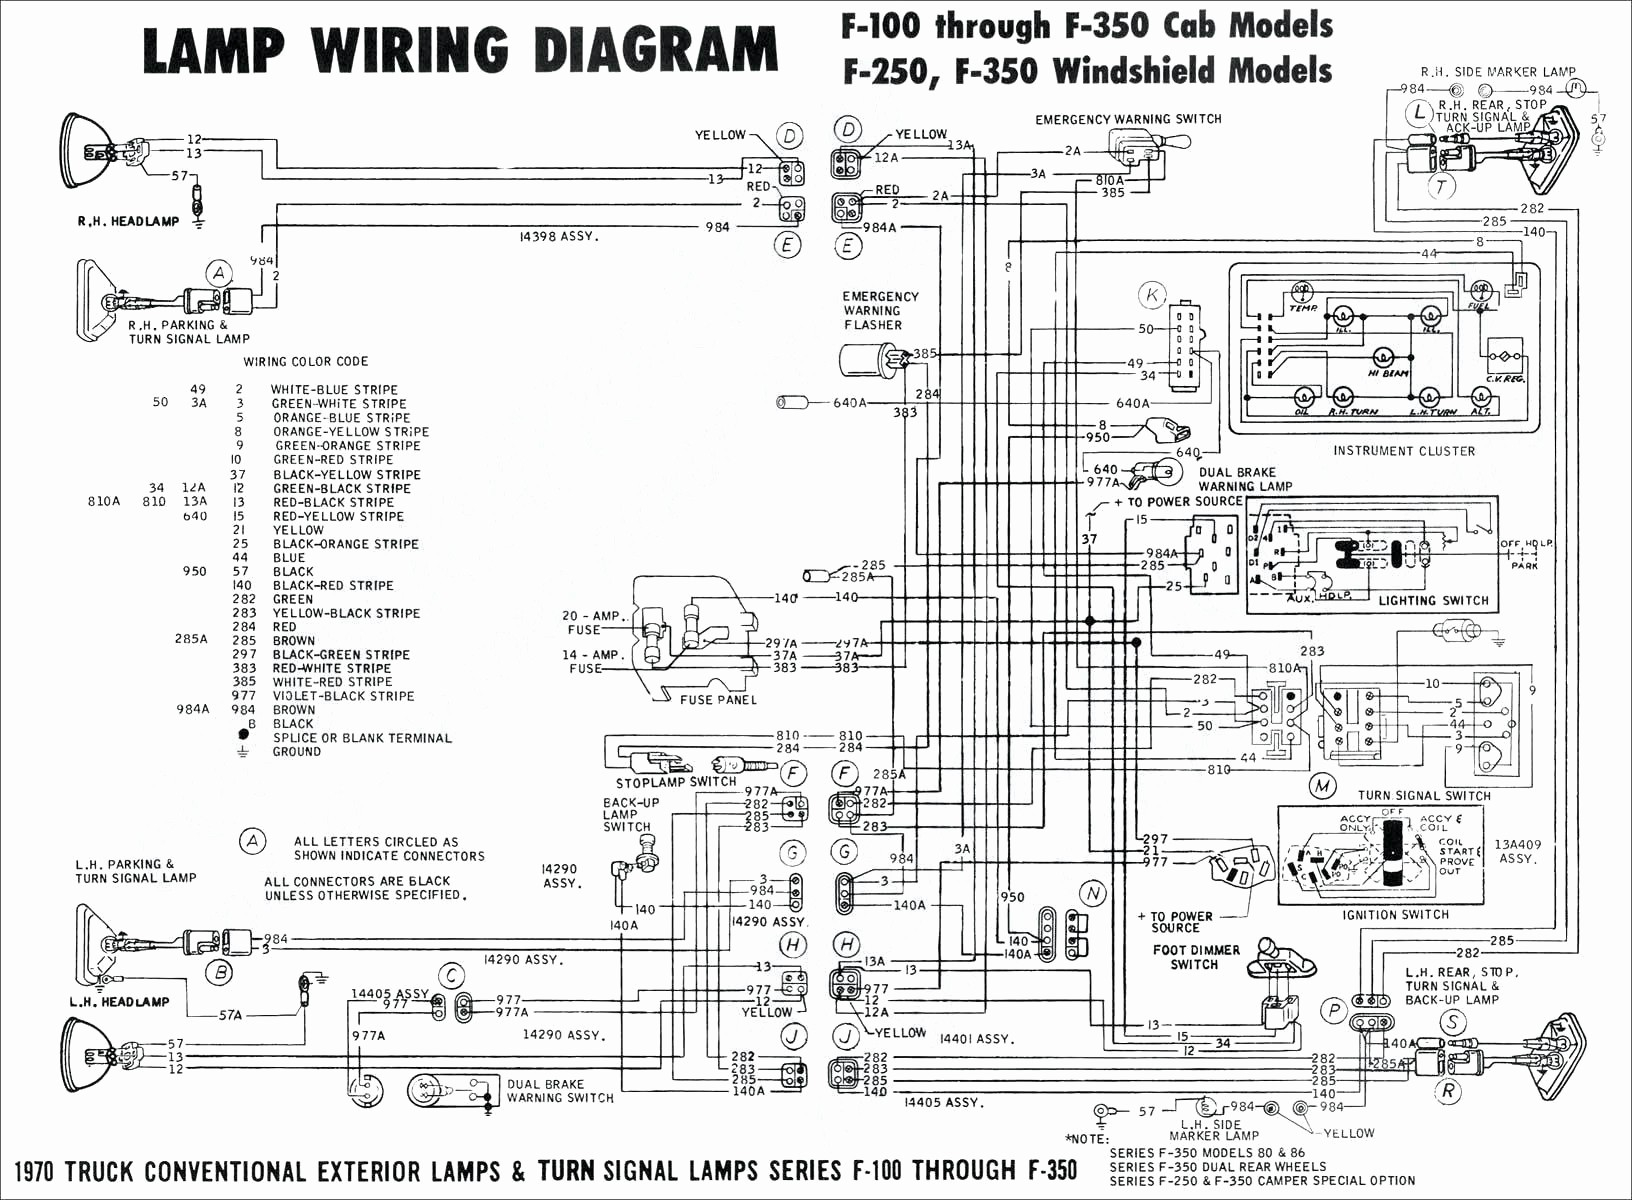 86 Chevy Wiring Diagram Free Picture Schematic Enthusiast Wiring 2005 Chevy  Tahoe Engine Diagram 1987 Chevrolet Engine Diagram Free Download